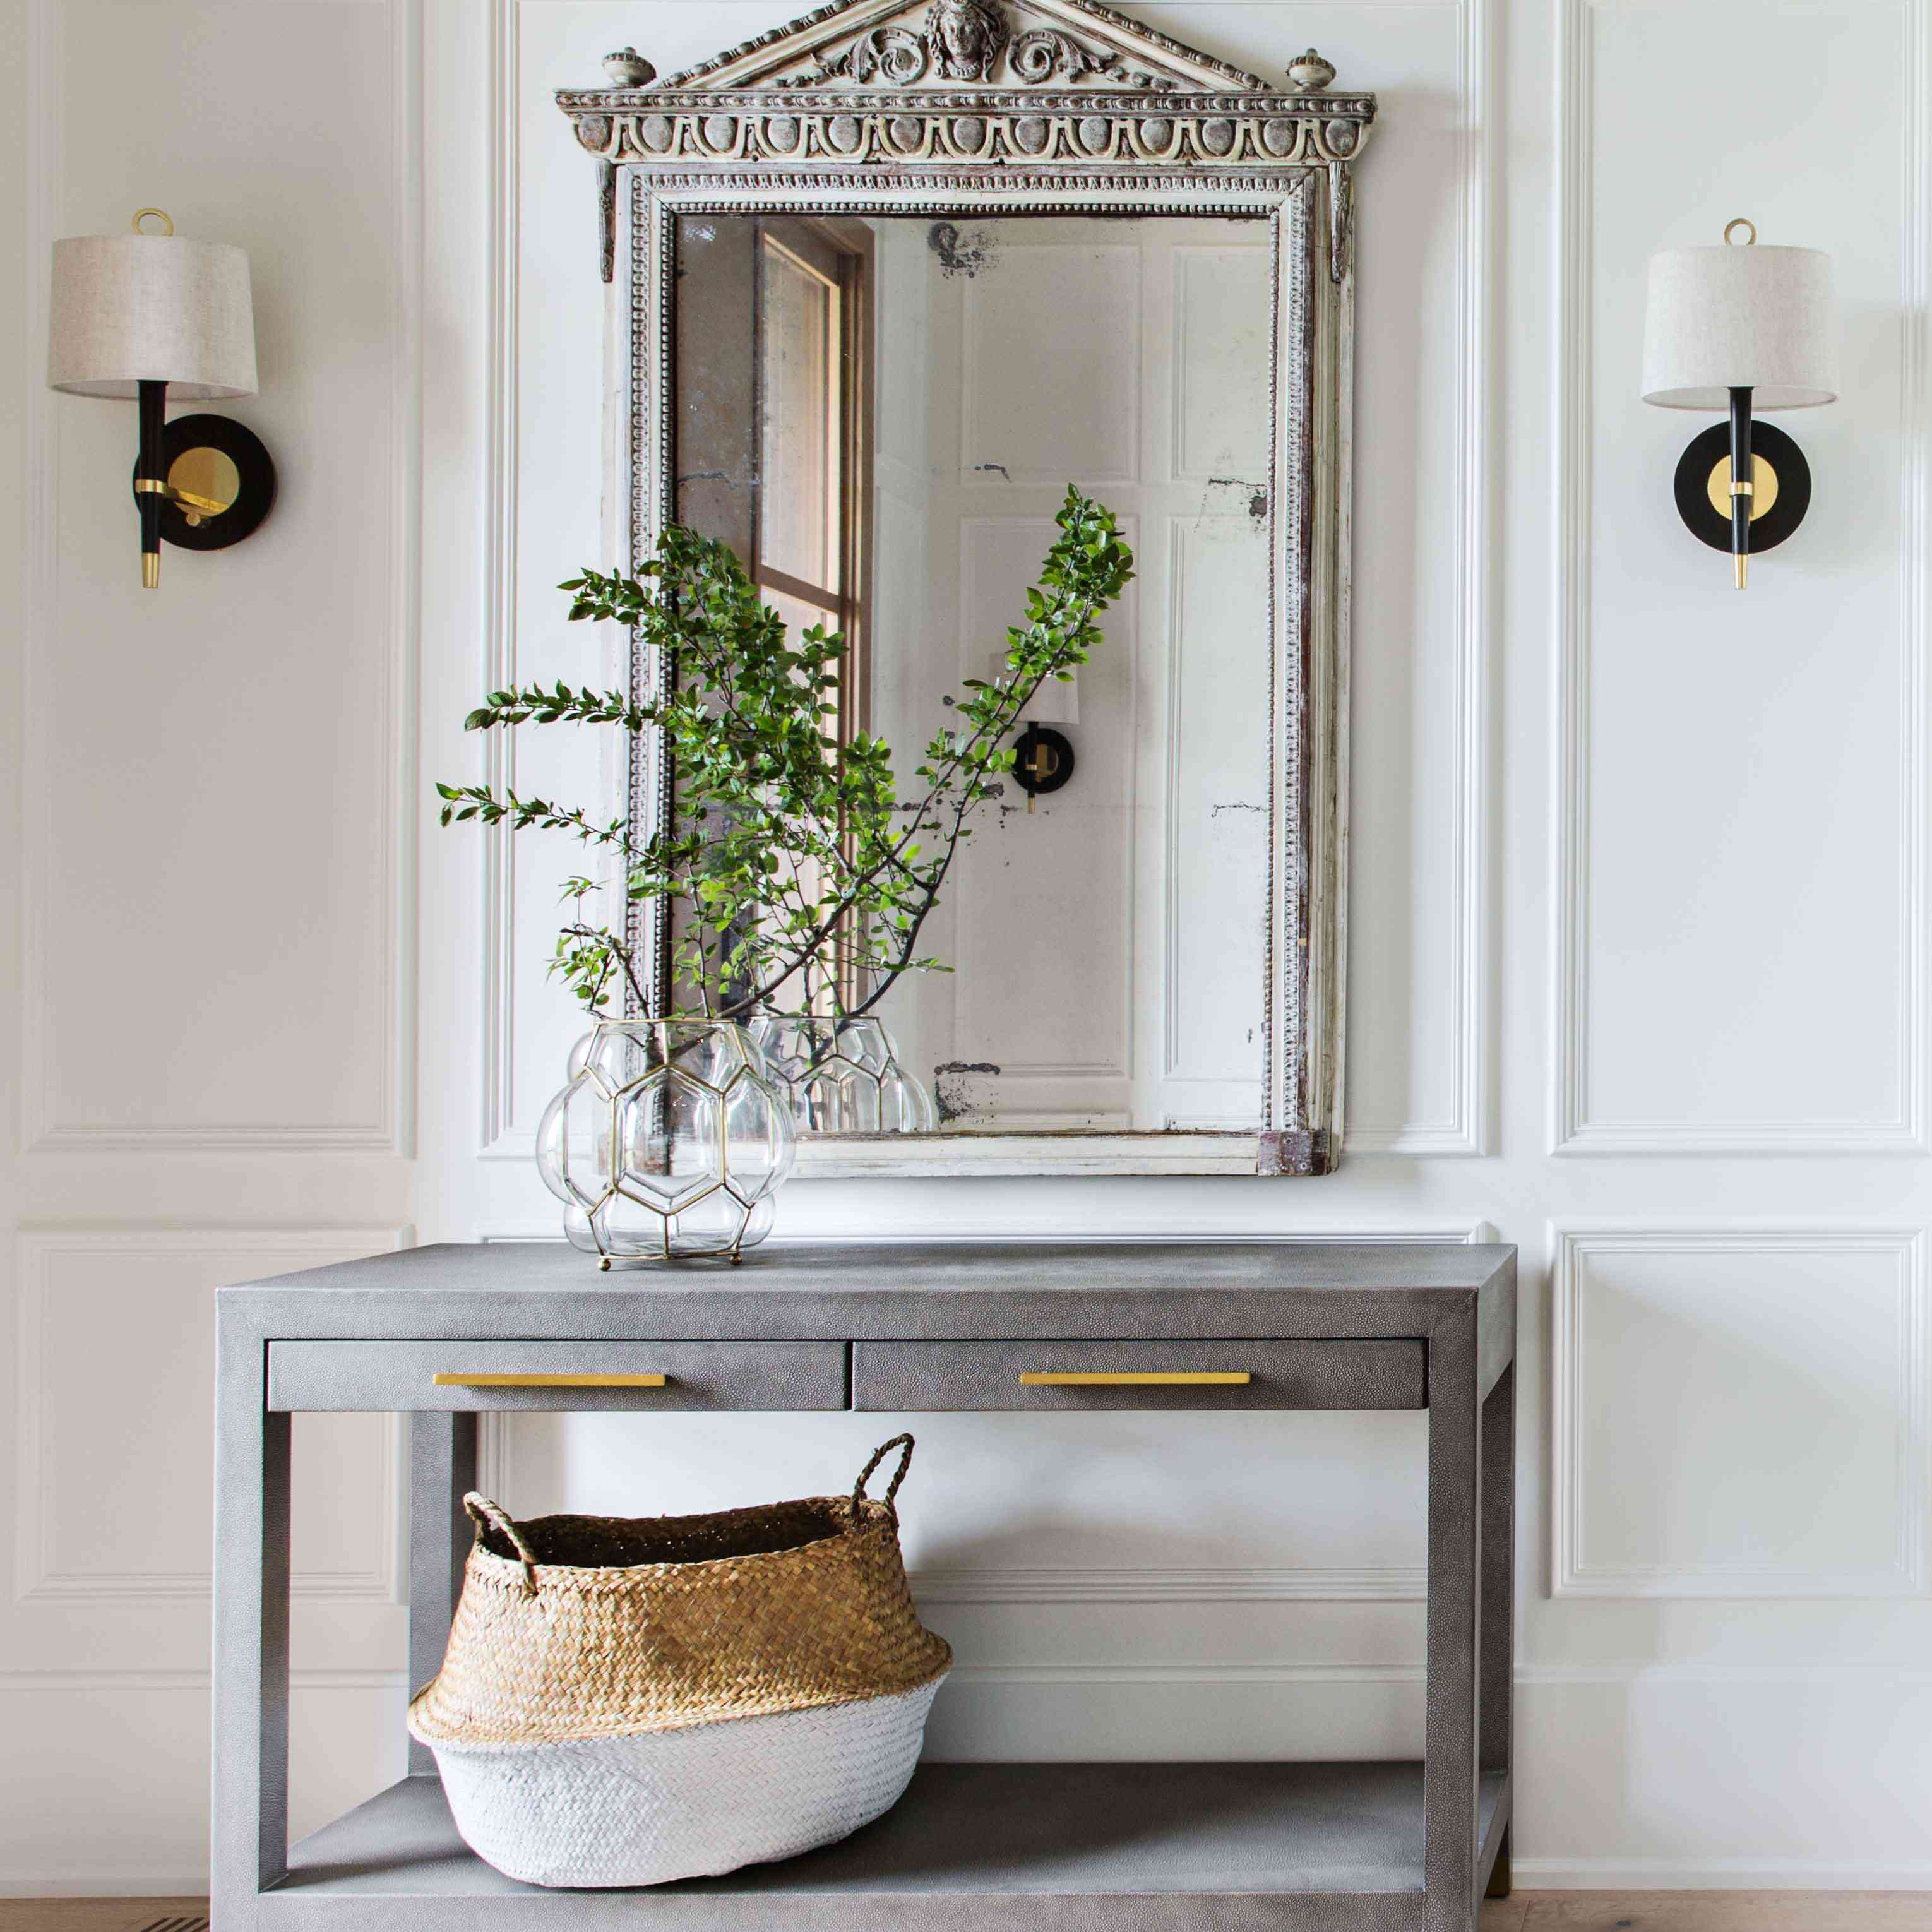 Mirror hangs above console in foyer